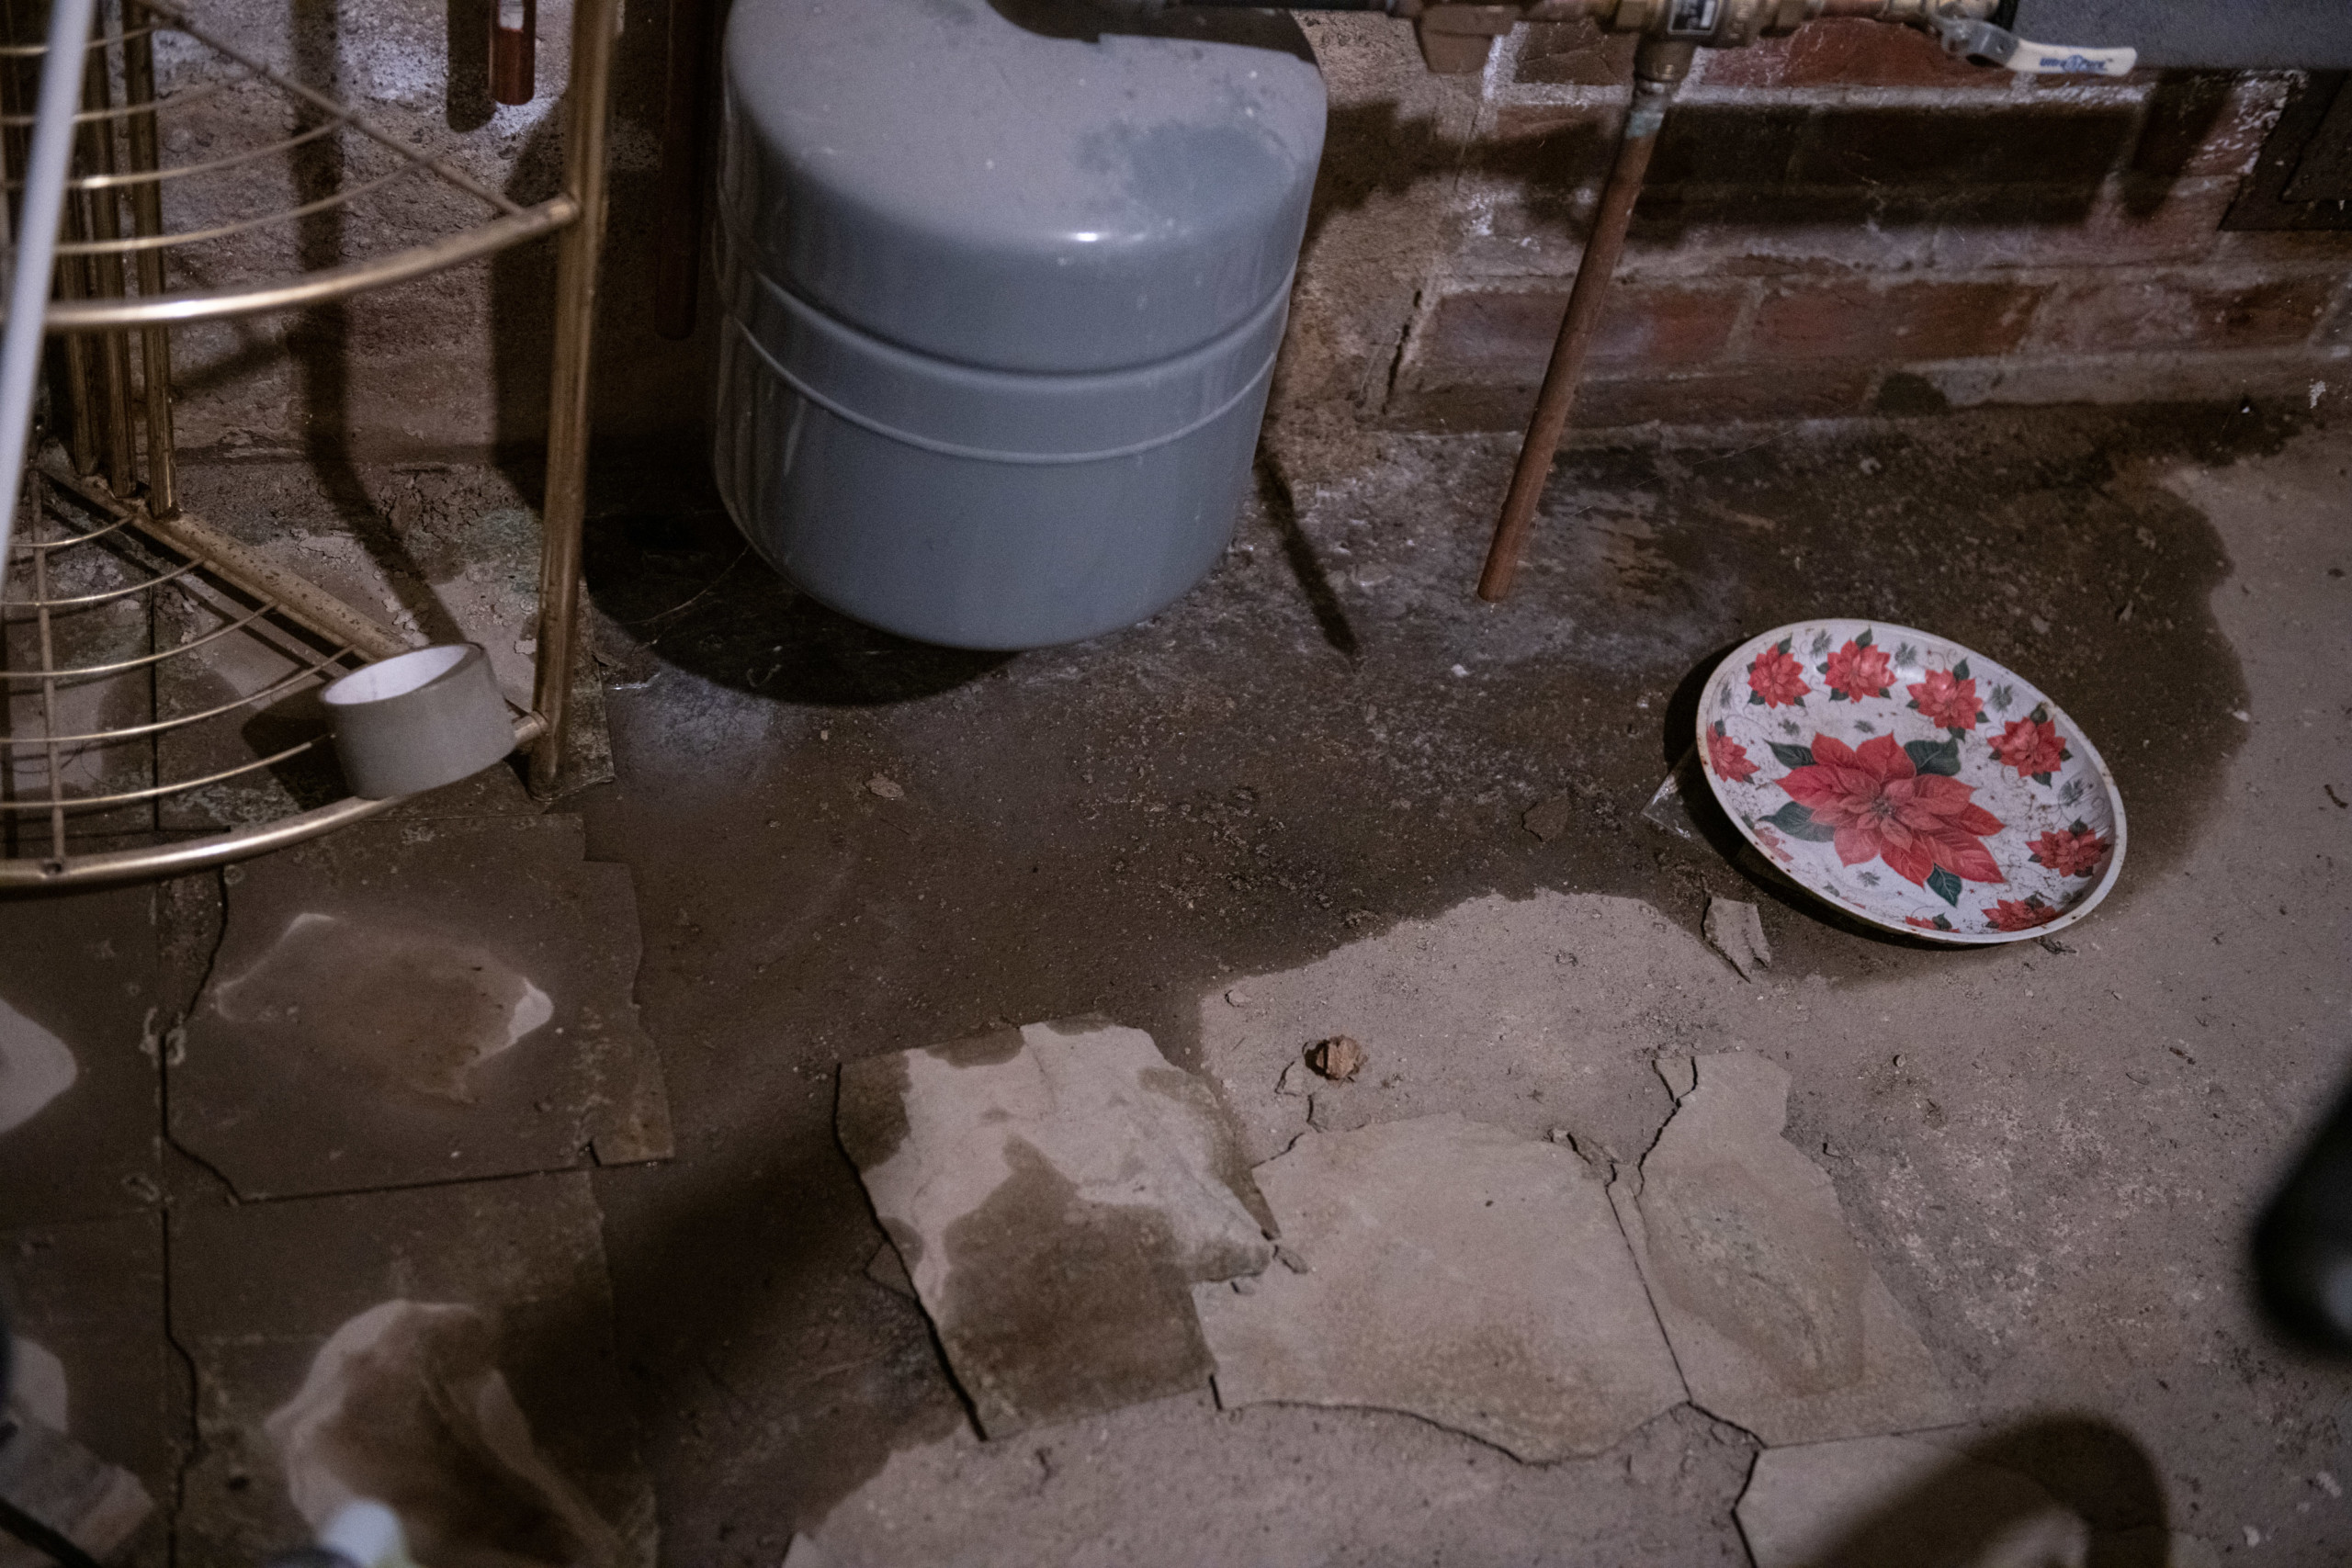 Basement of the Baileys home had mold and water damage